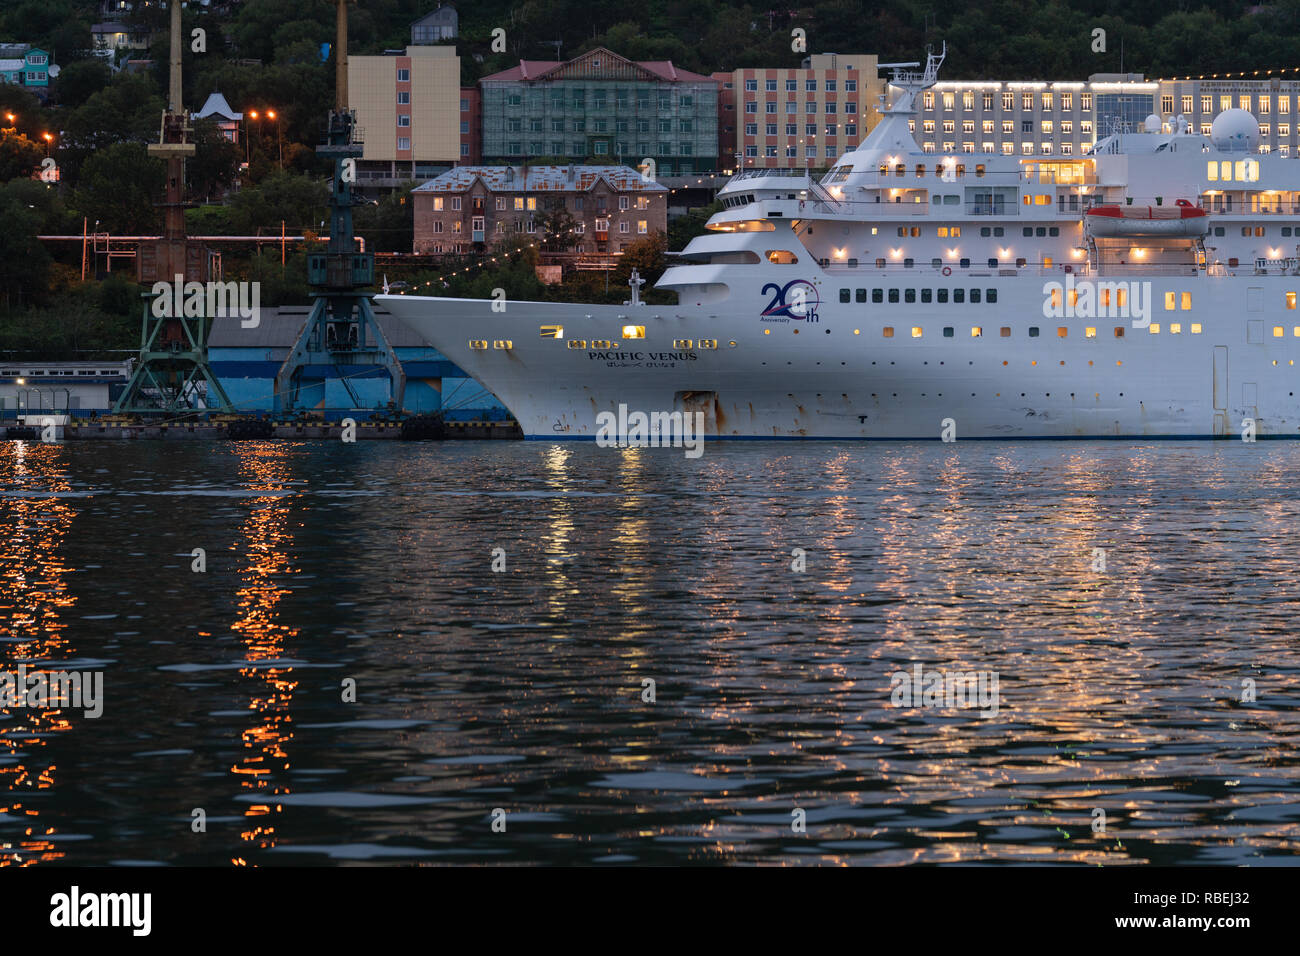 Night view of Japanese cruise liner Pacific Venus anchored at pier in commercial sea port of Petropavlovsk-Kamchatsky City - Stock Image